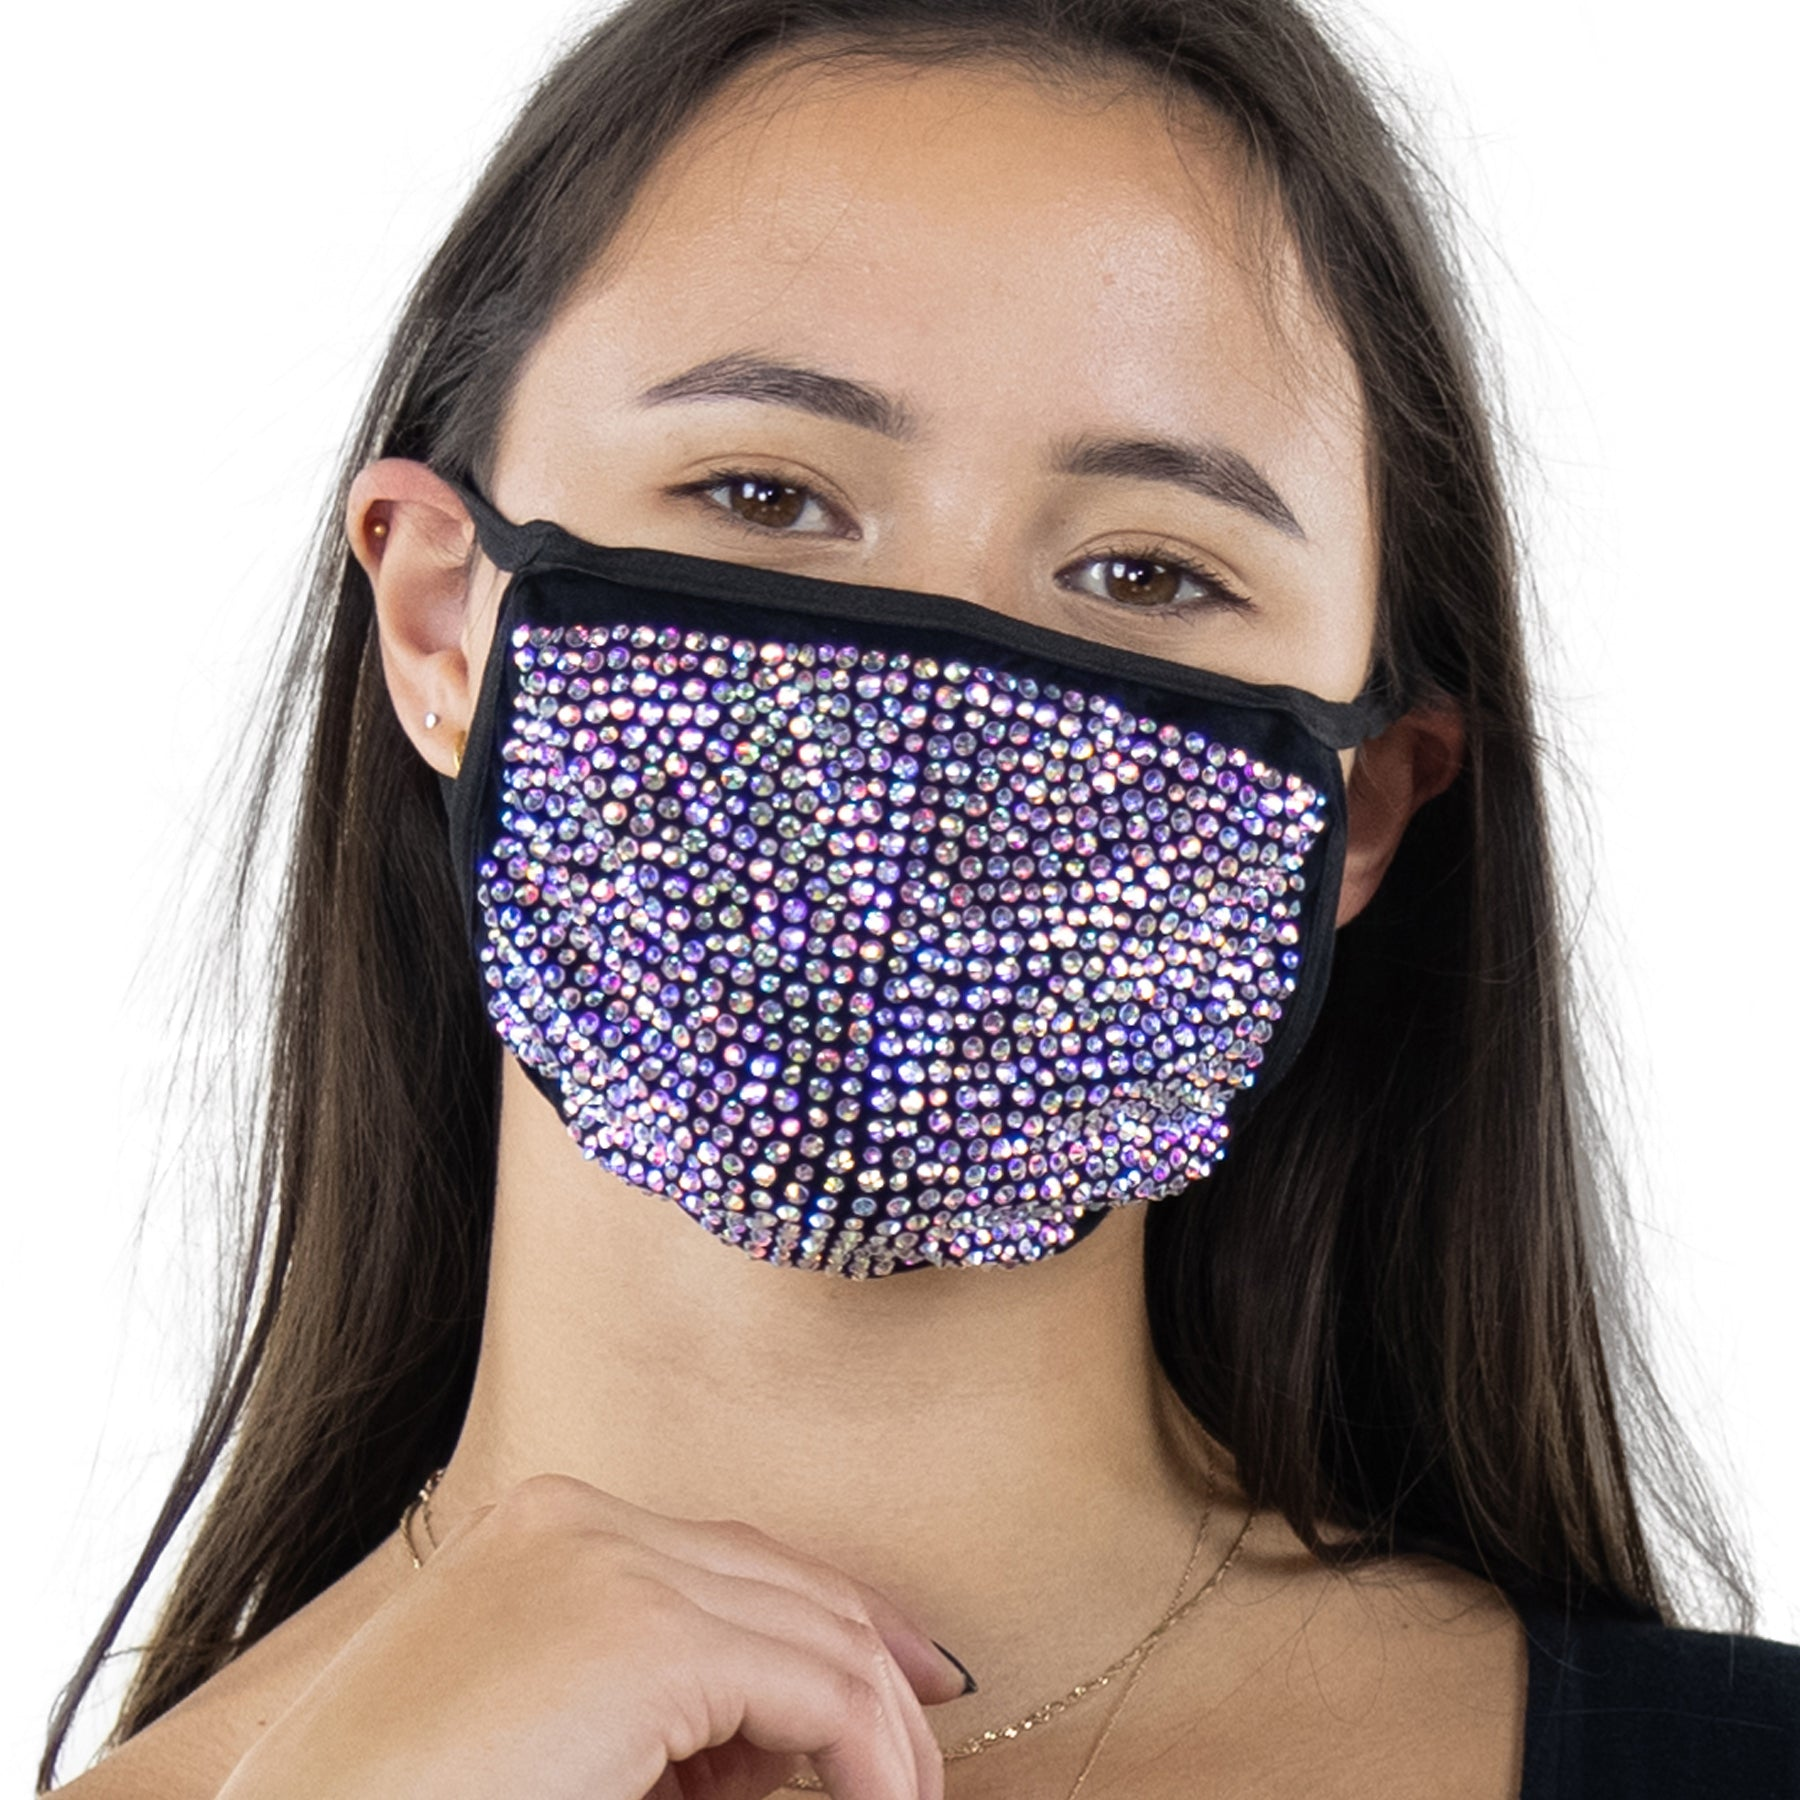 Rhinestone Face Mask in Polyester Material, clear color, front view